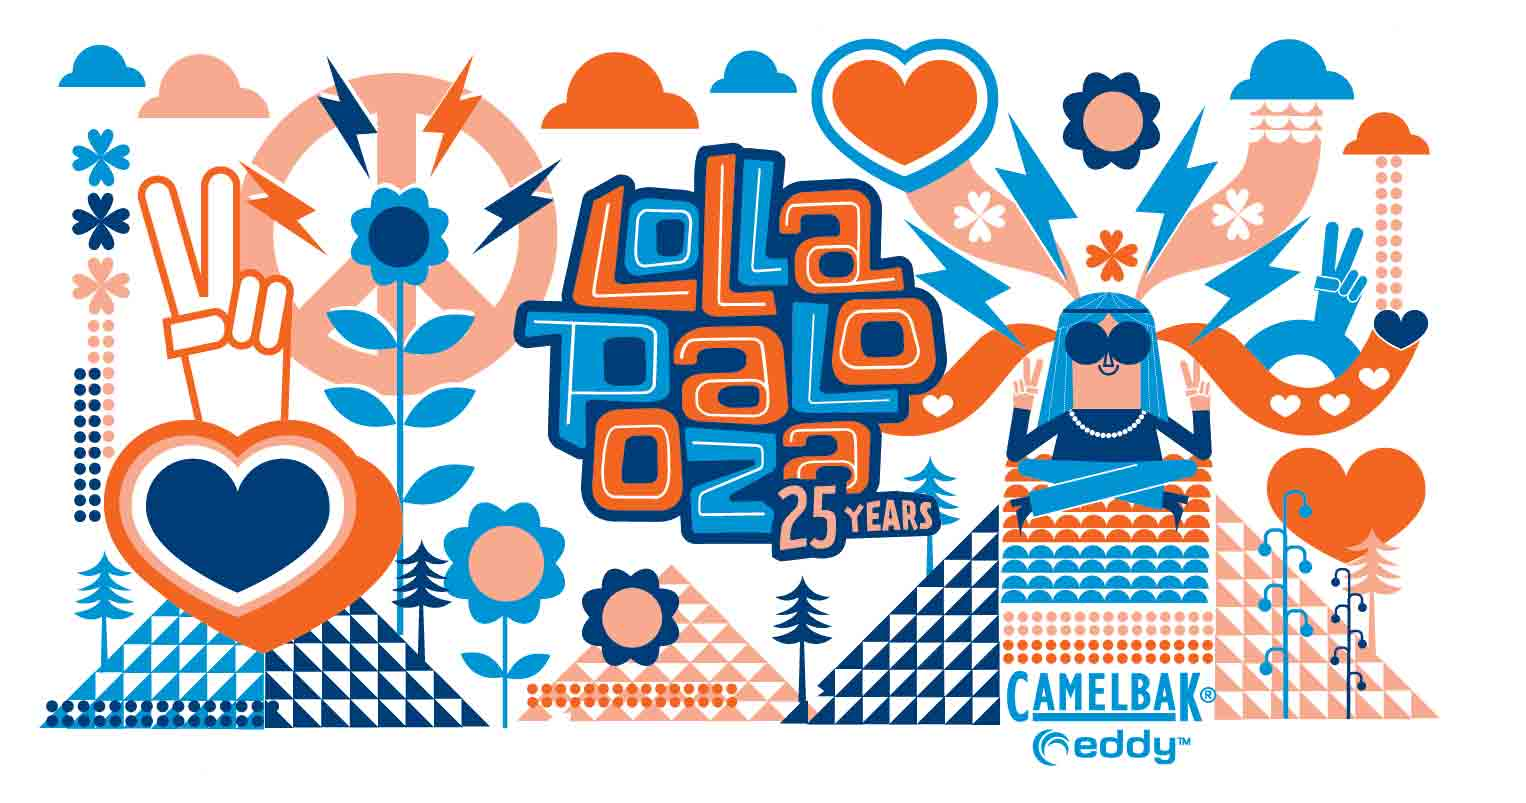 Graphic Love-Lollapalooza-Camelbak Bottle Design